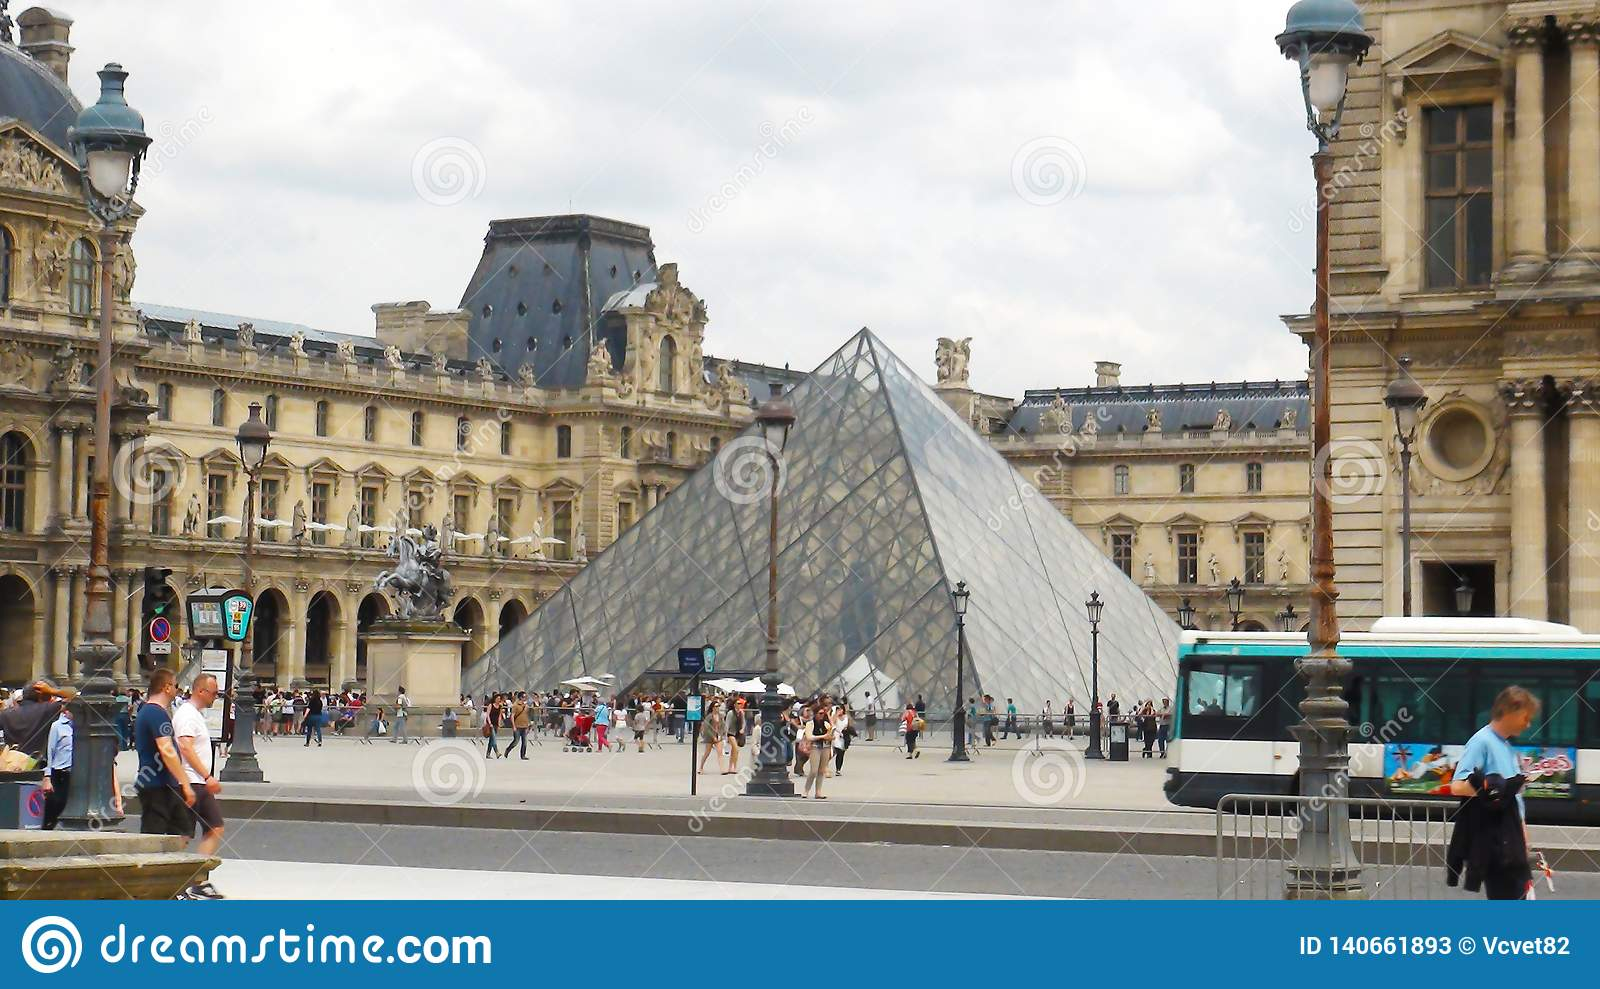 Overview to Louvre museum